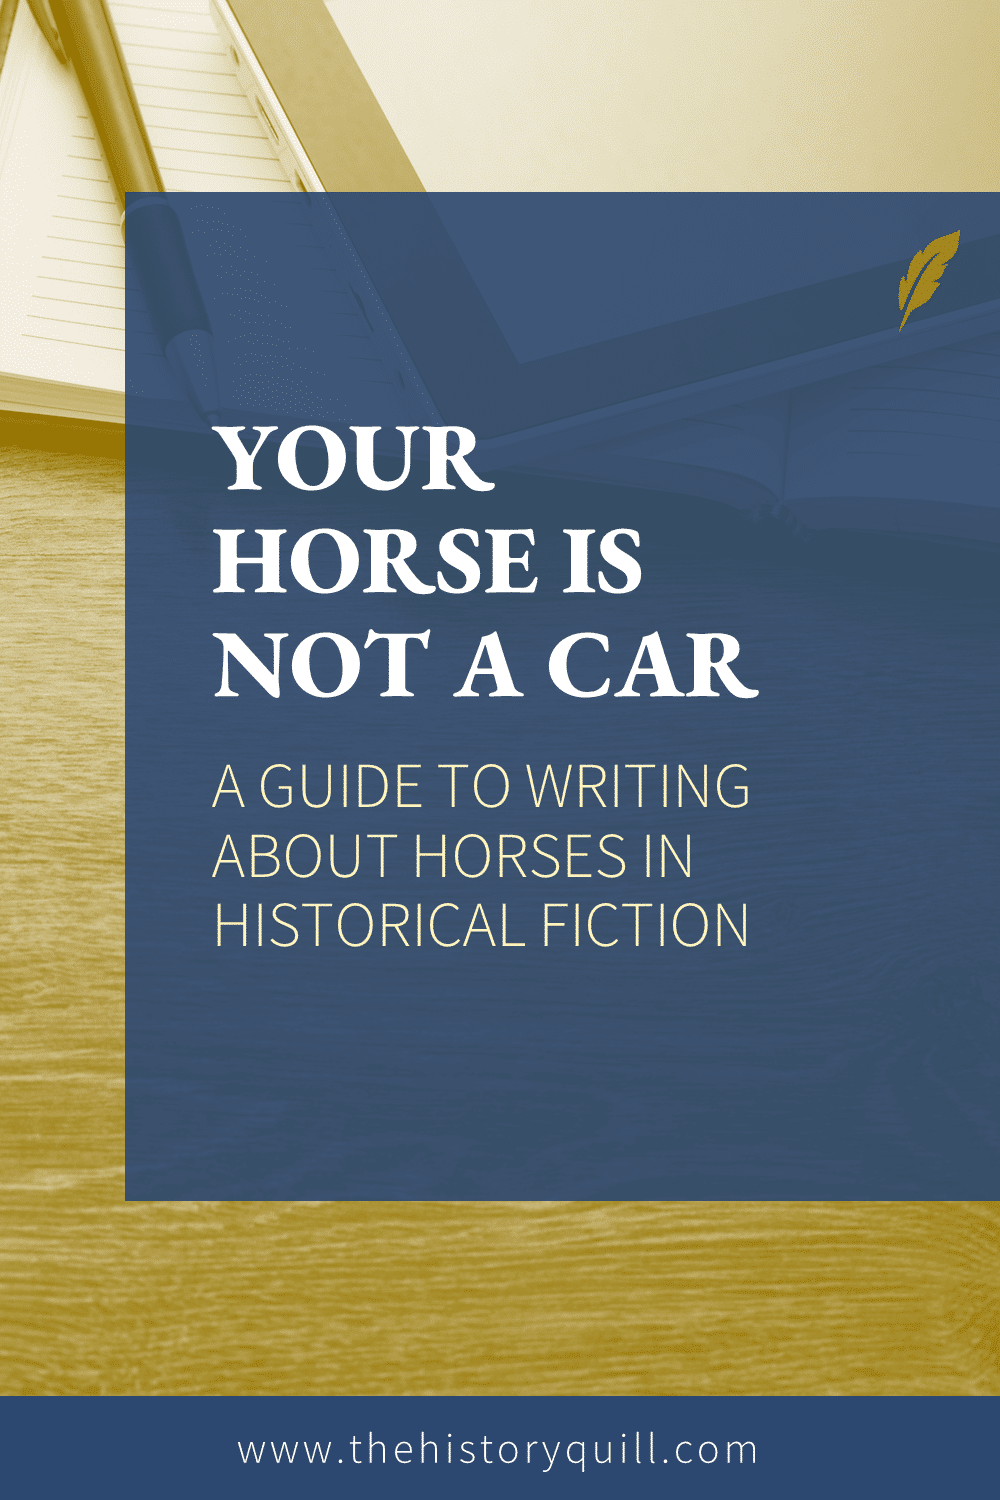 From The History Quill blog, reasons why your horse is no a car with a guide to writing about horses in historical fiction